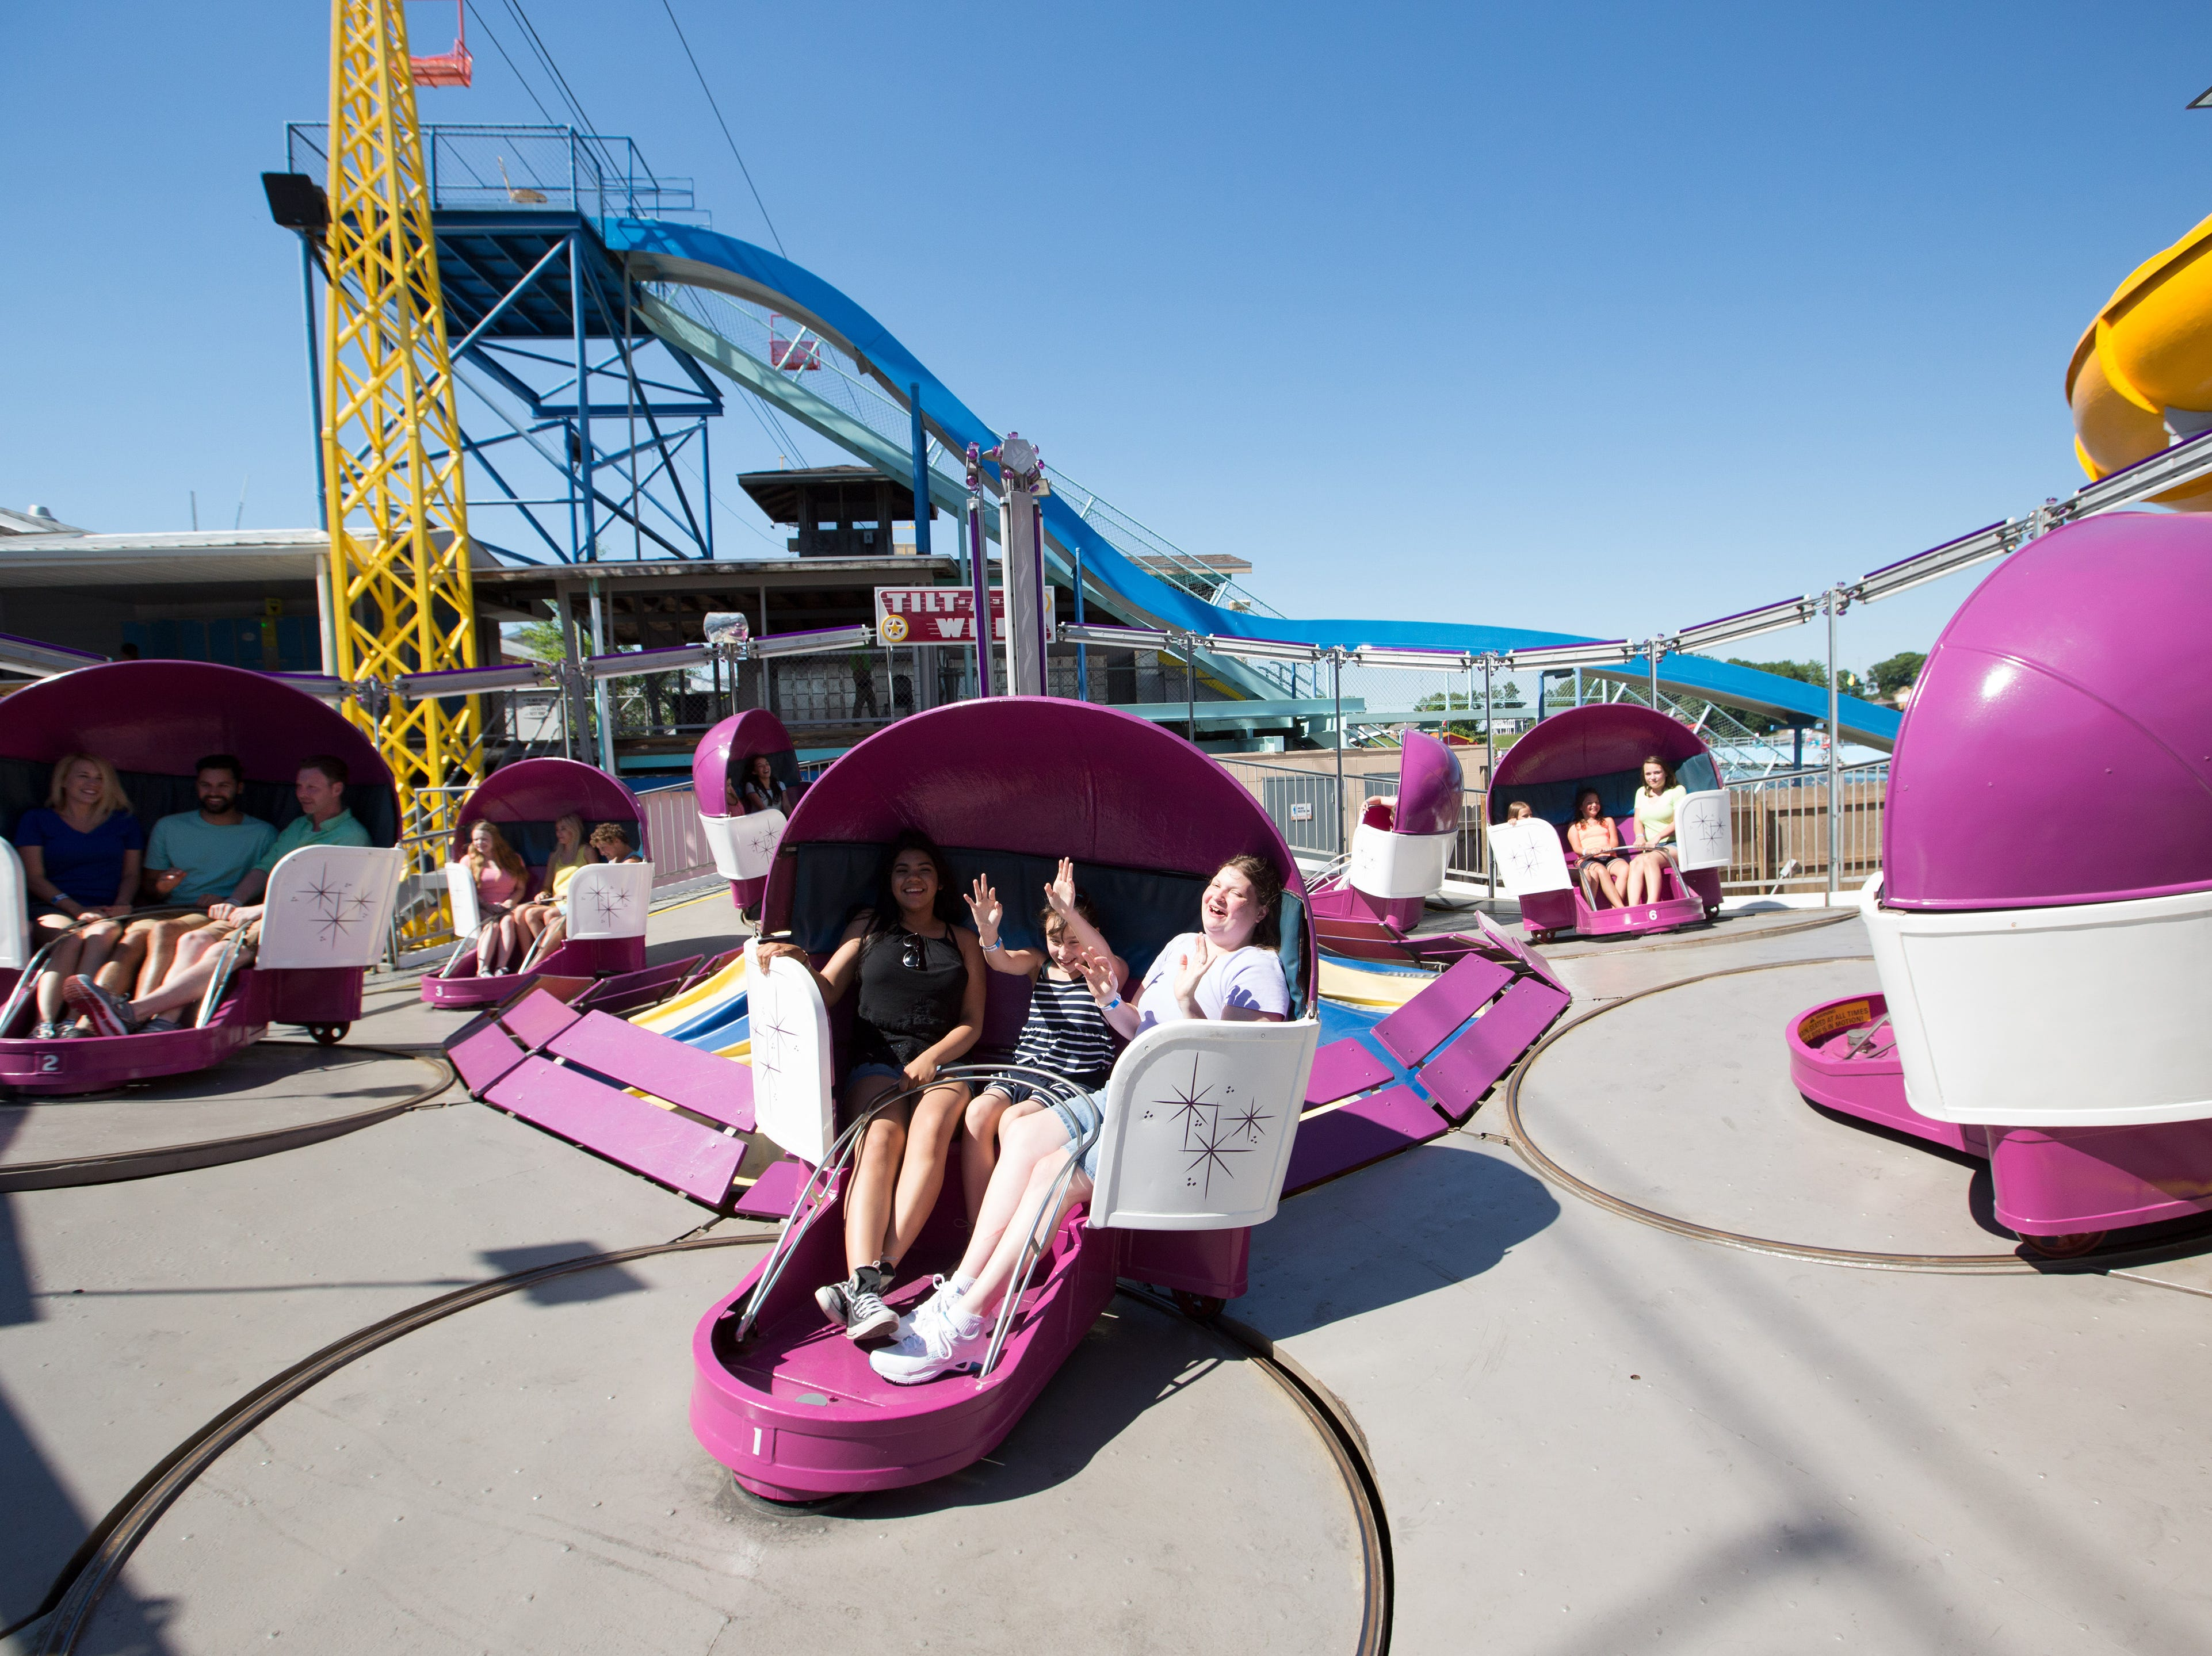 The Tilt-A-Whirl is one of the classic rides coming to Clementon Park this season.